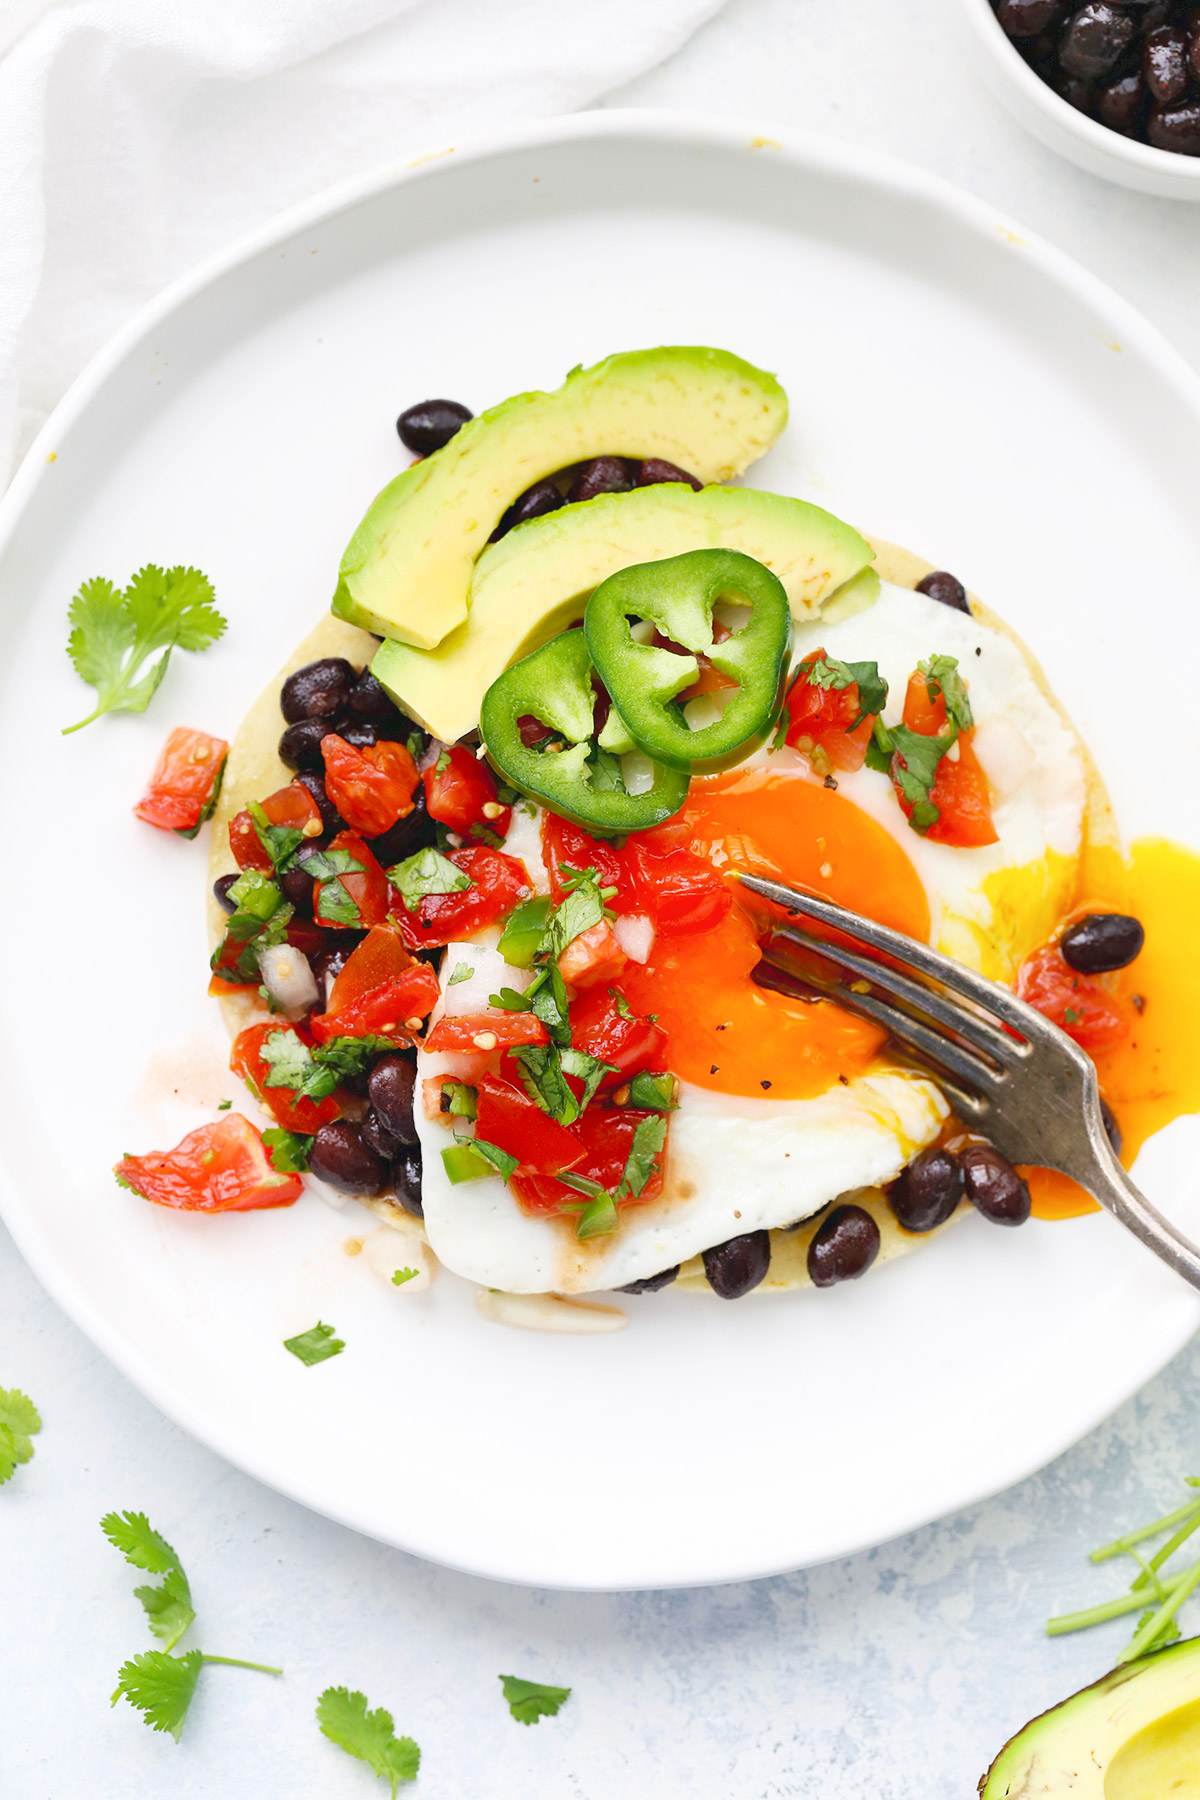 Huevos Rancheros (Ranch Style Eggs) from One Lovely Life